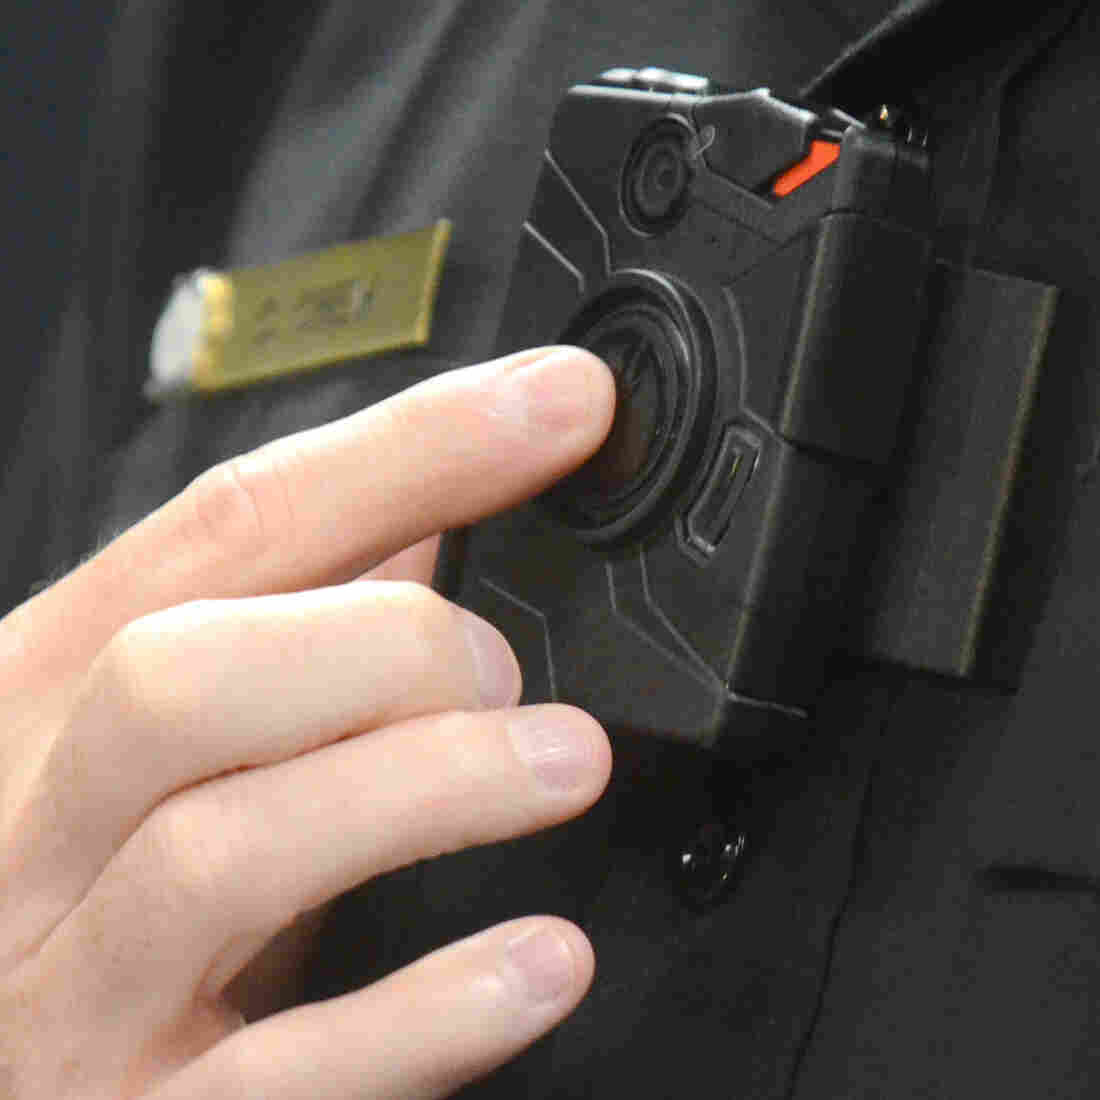 Can Body Cameras 'Civilize' Police Encounters?